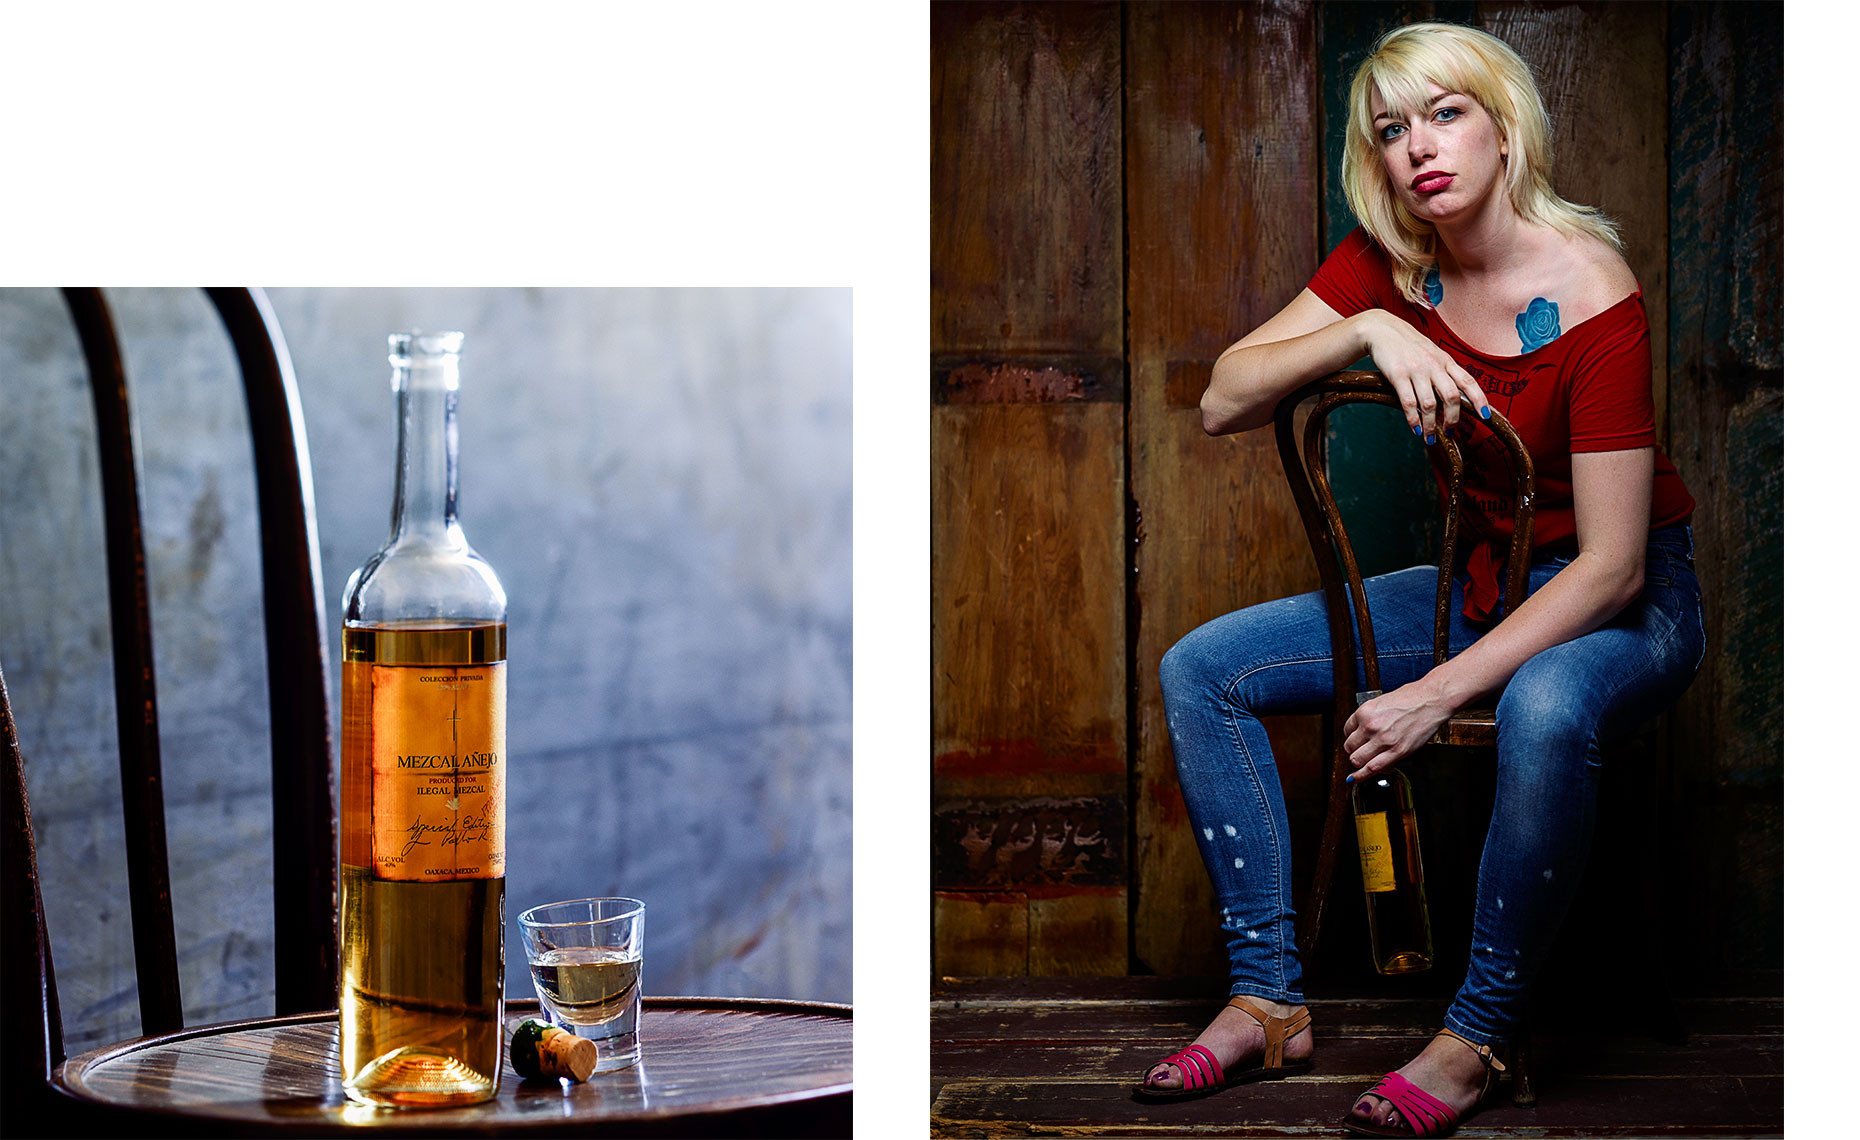 Brittany for Ilegal Mezcal by Leo Gong portrait photography